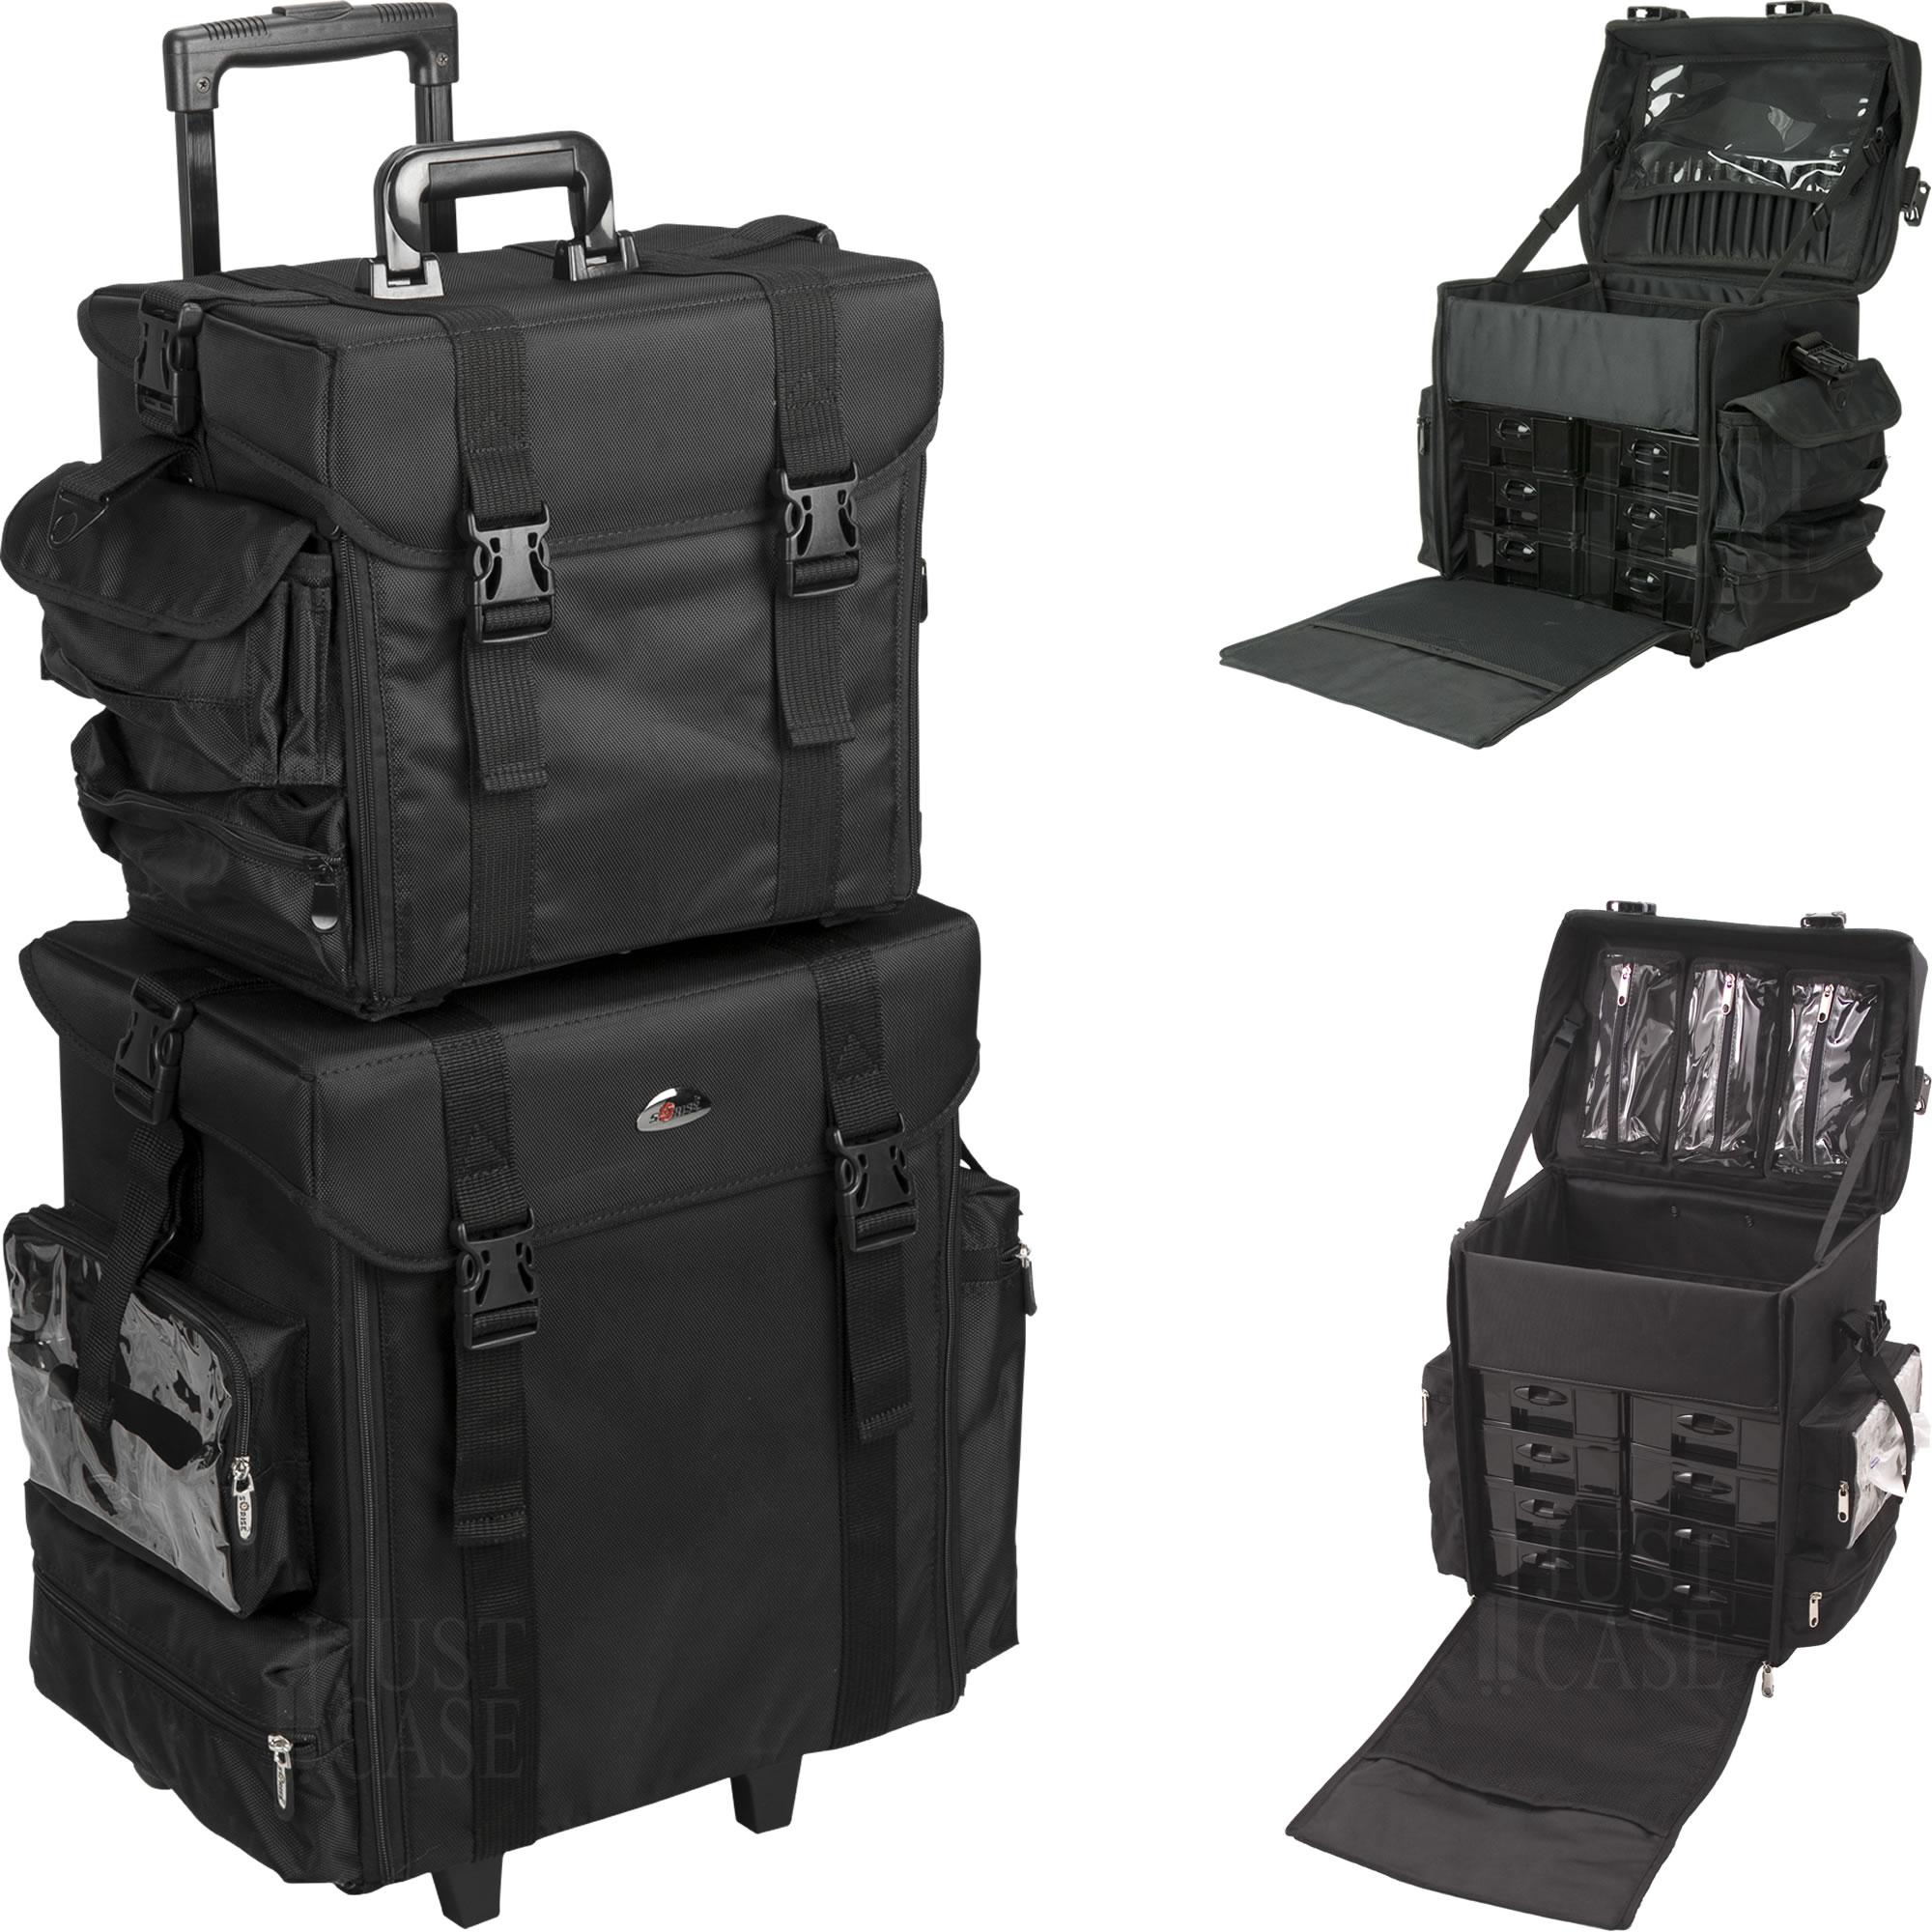 Black Trolley Makeup Case